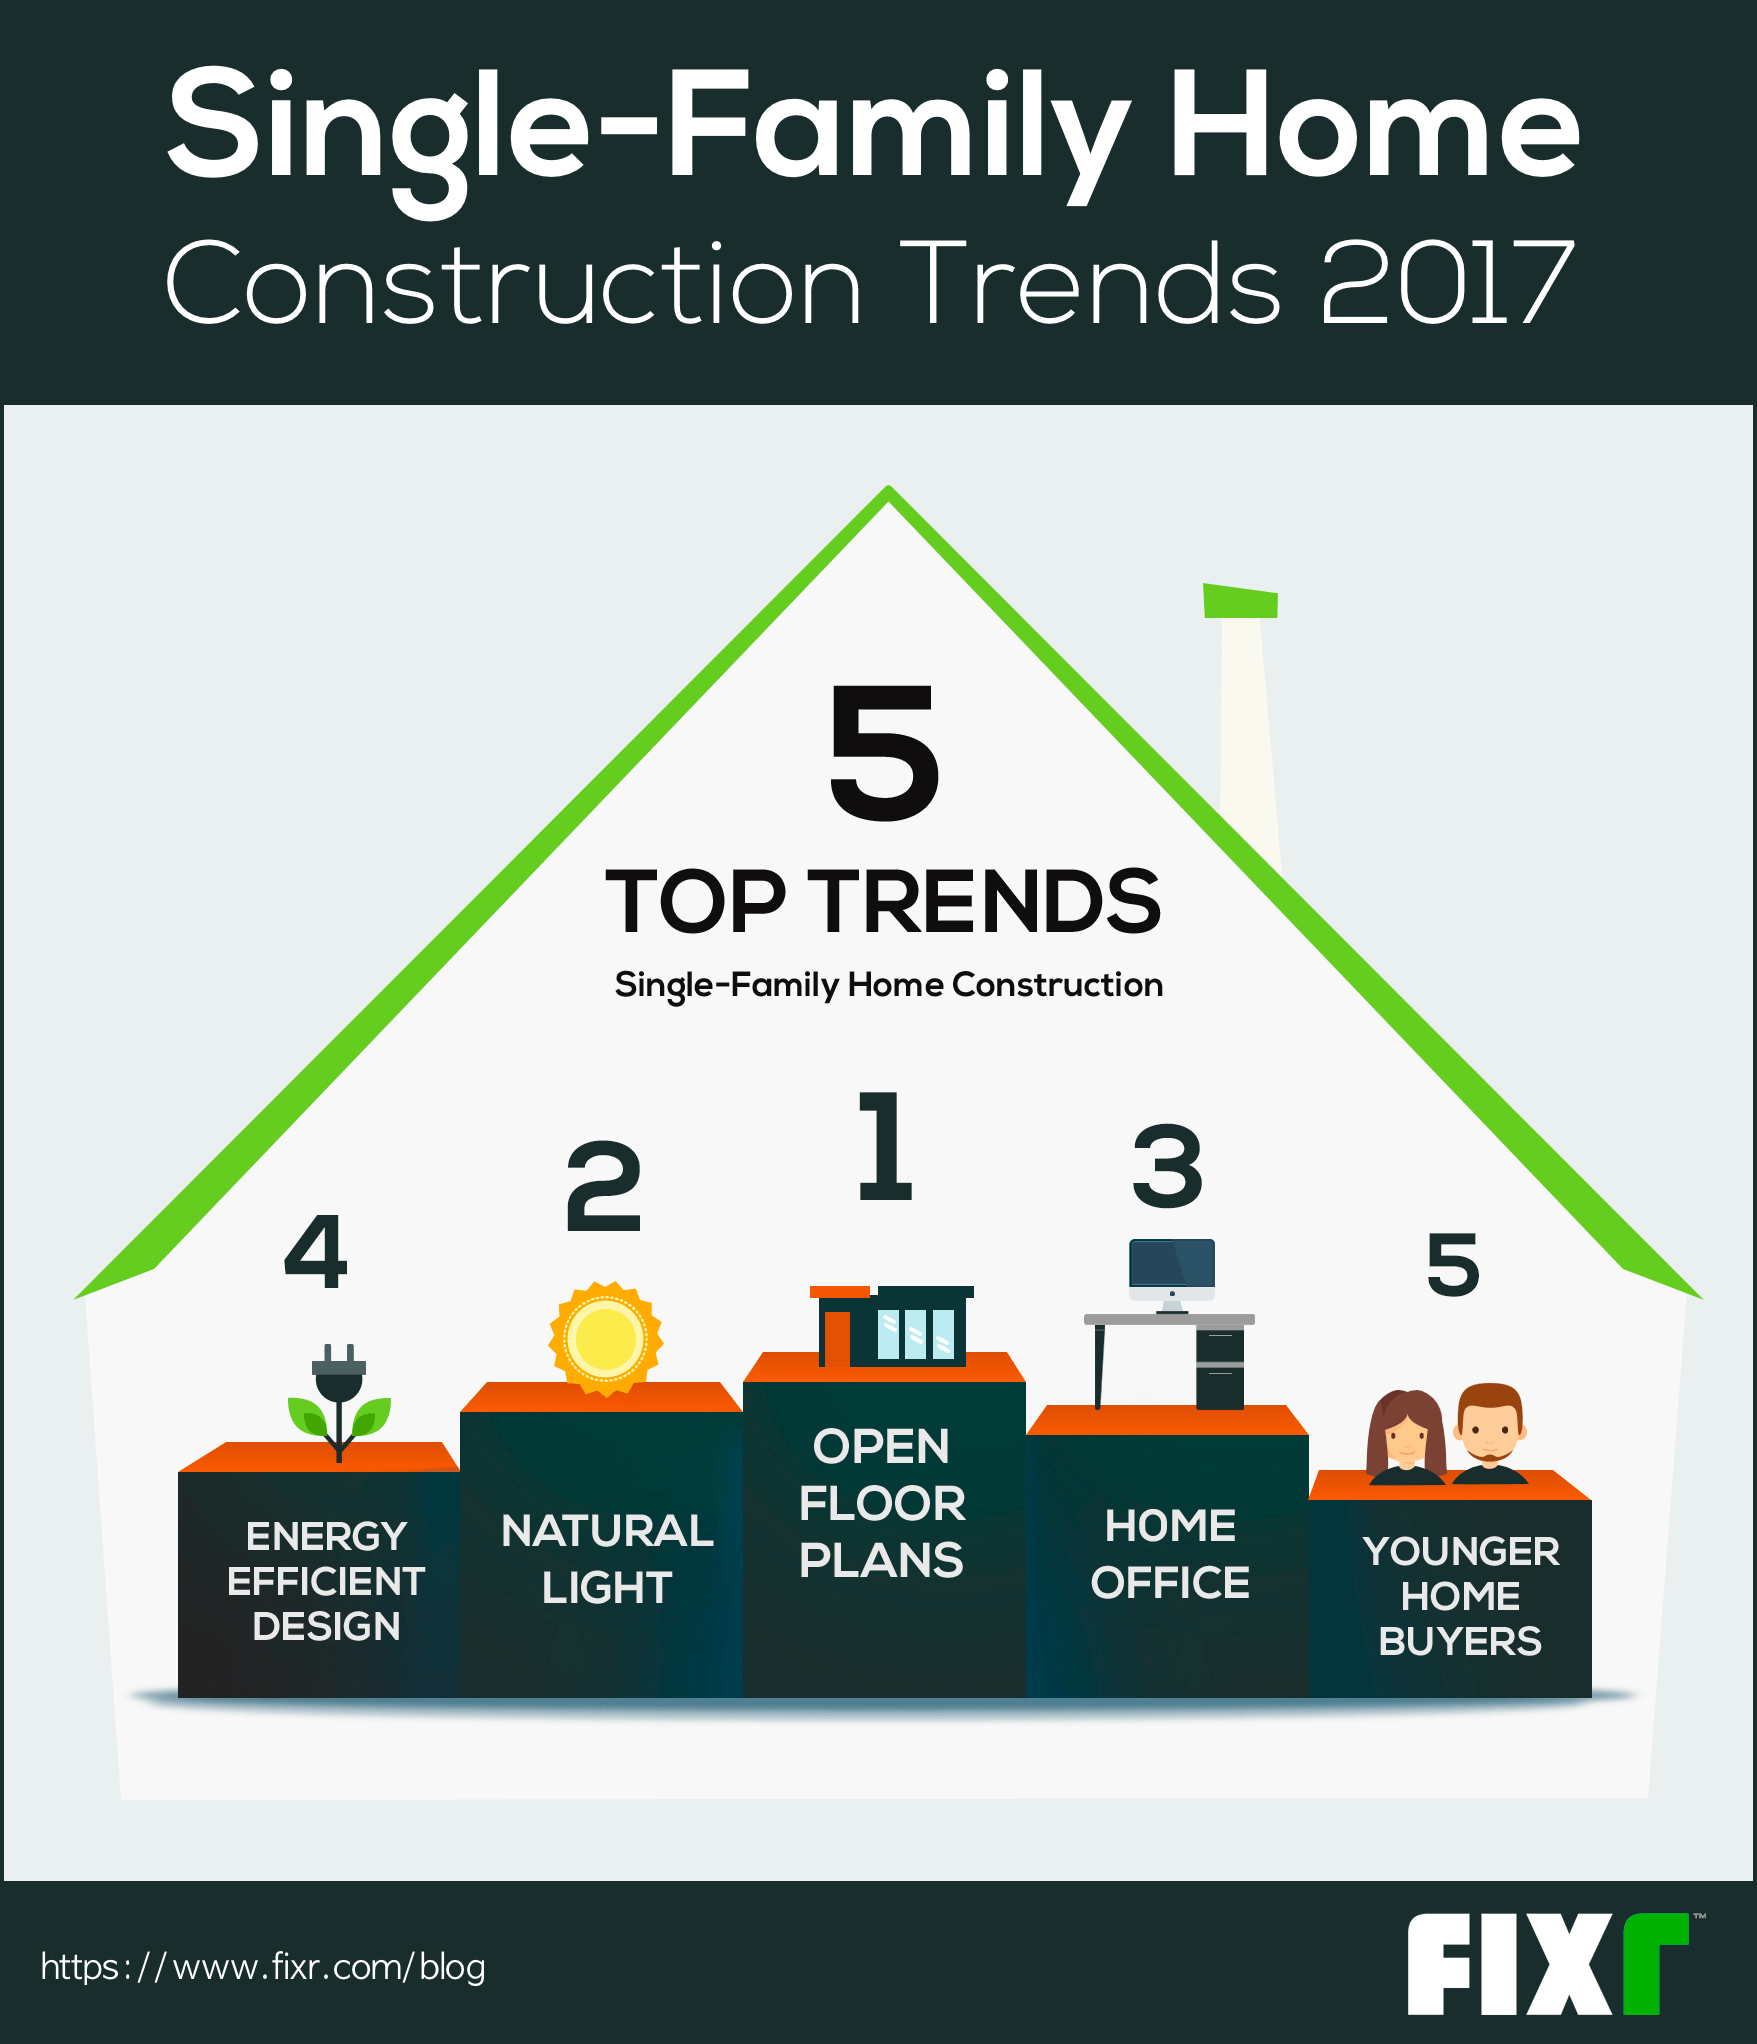 Single-Family Home Construction Trends 2017